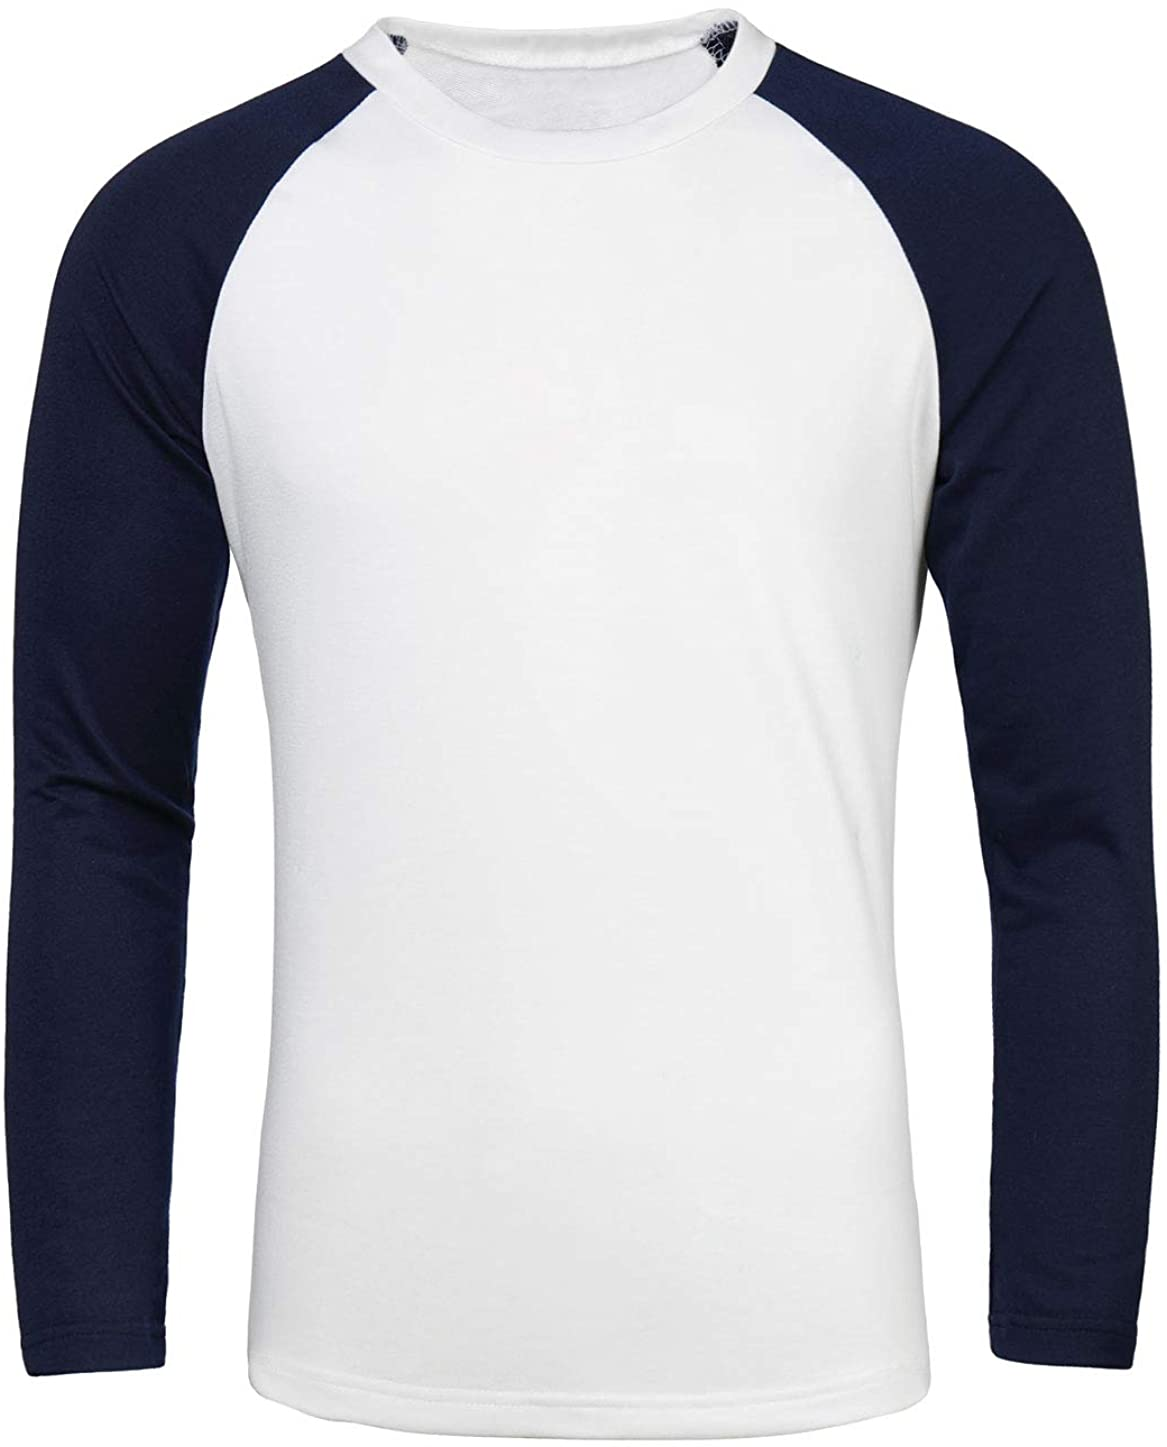 uxcell Men Color Block Crewneck Baseball Raglan Long Sleeves Tee Shirt